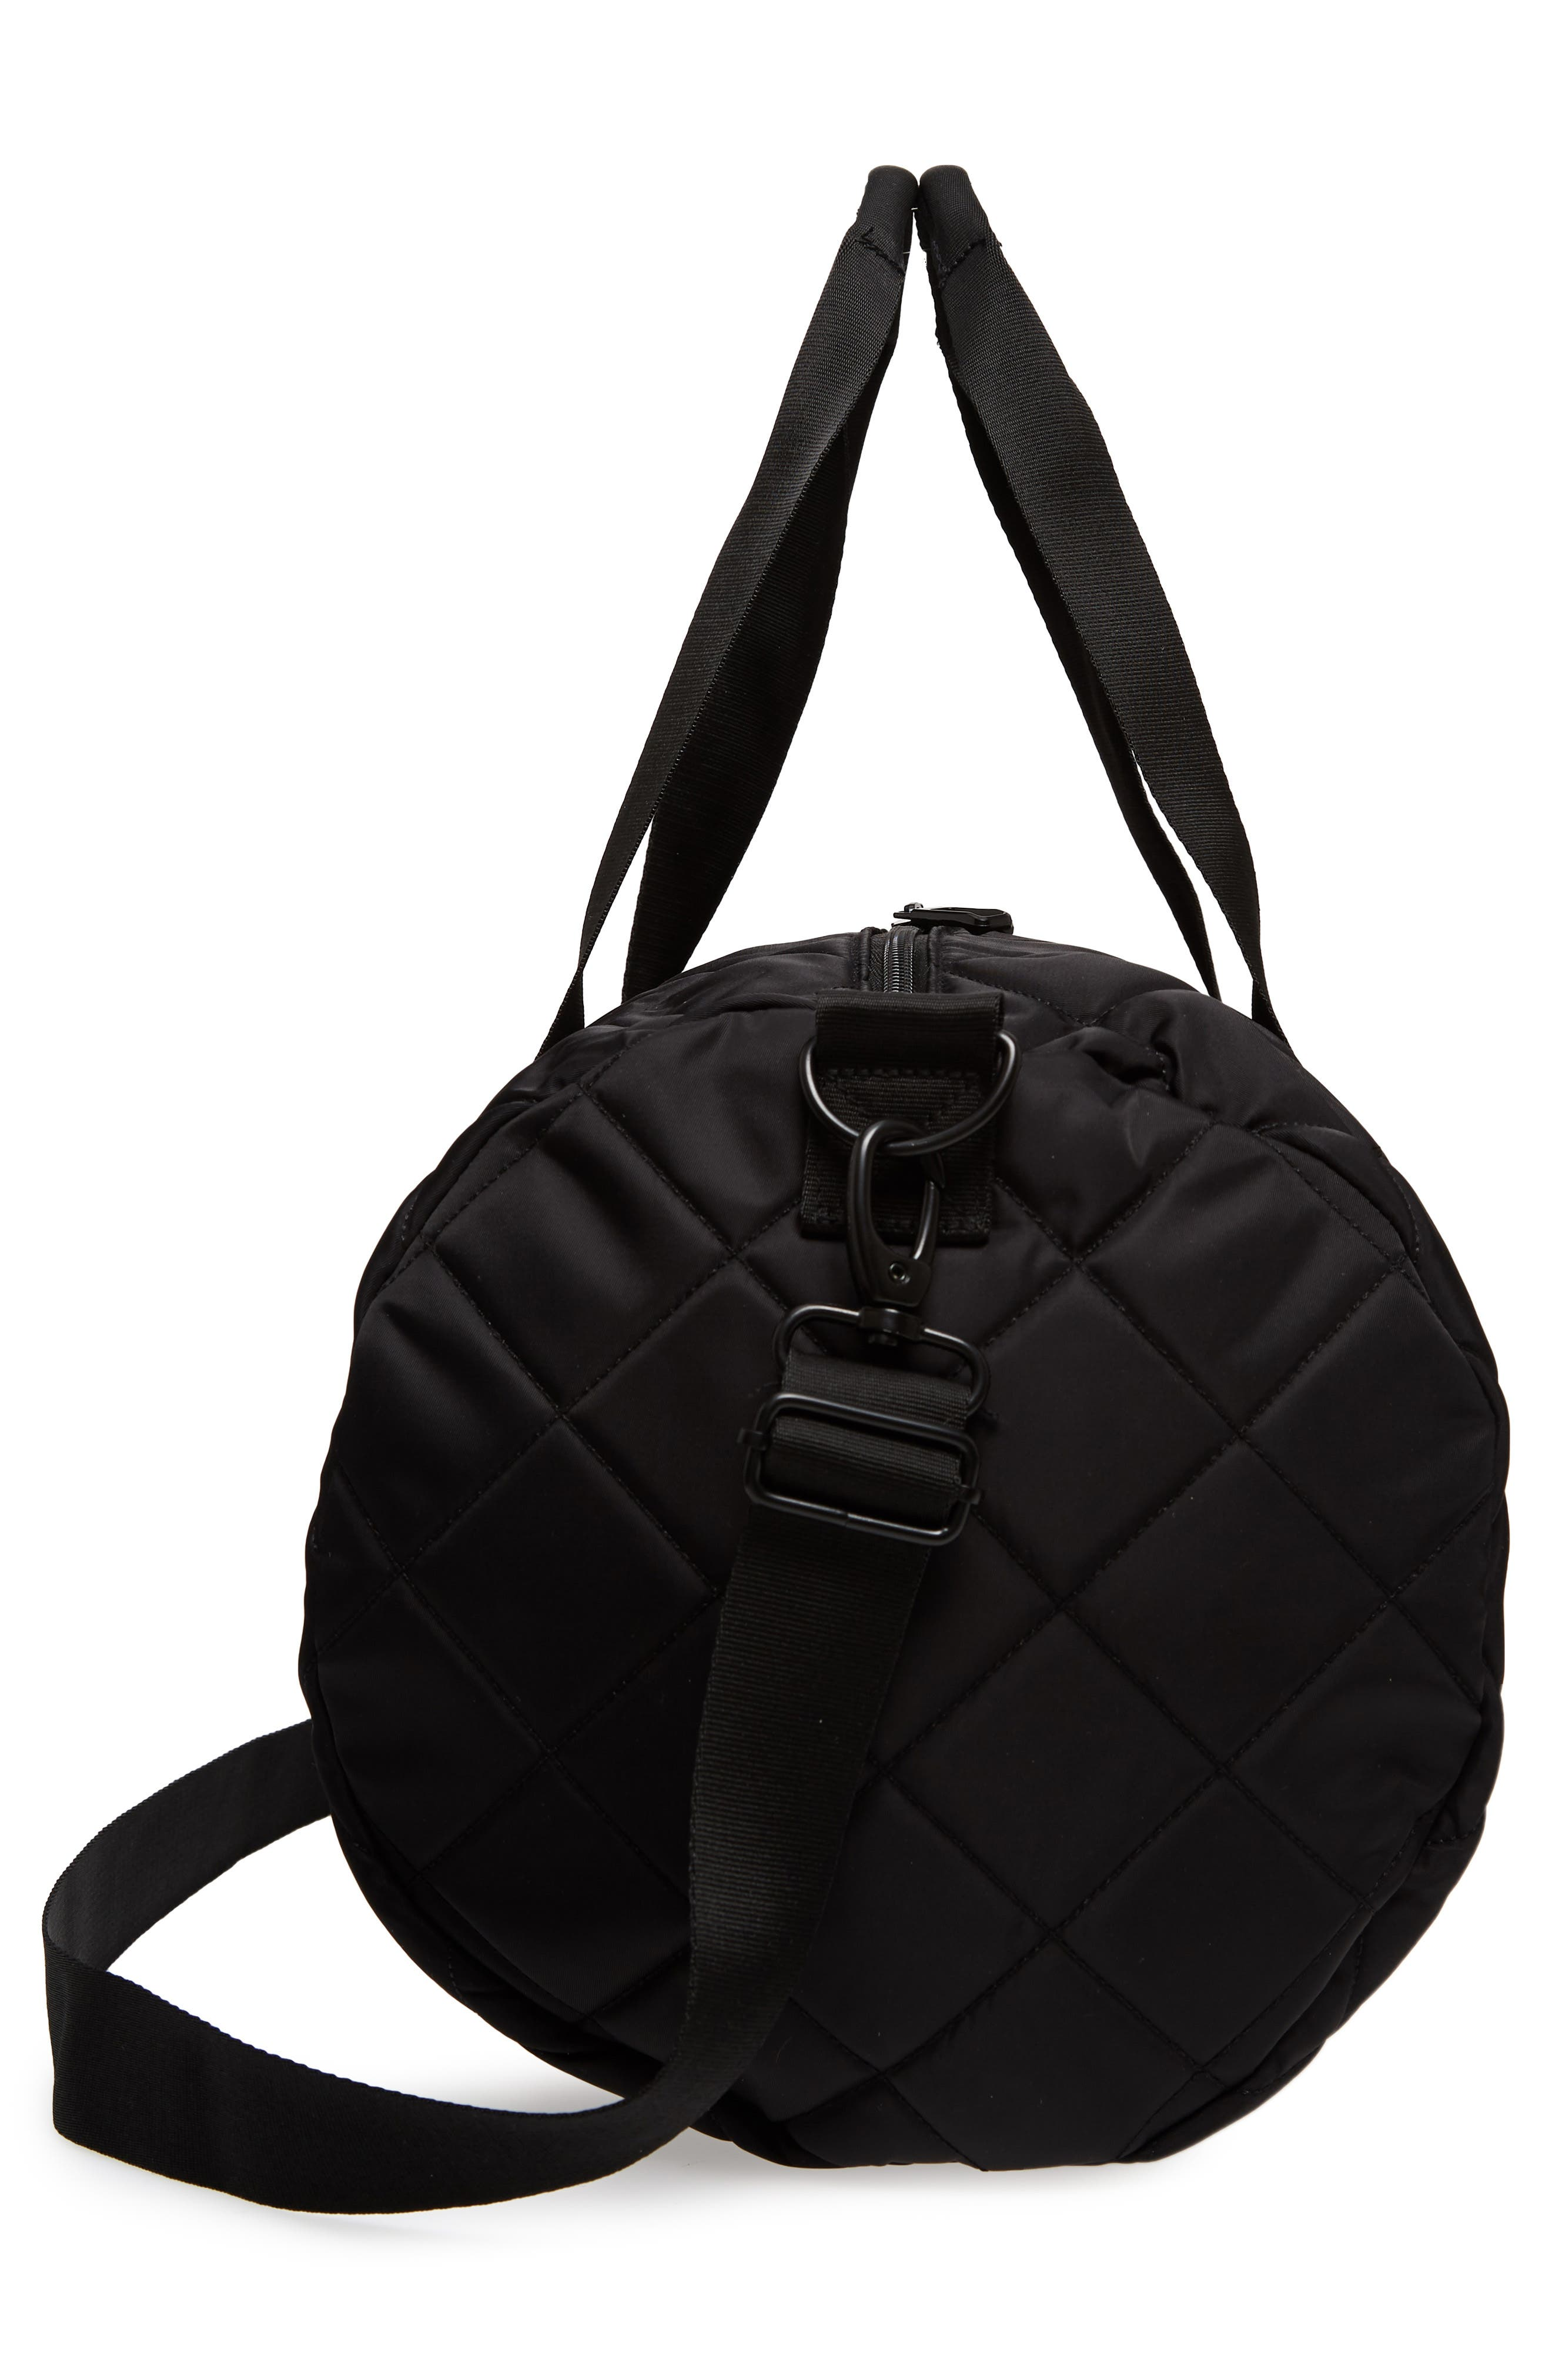 Roadie Small Duffel Bag,                             Alternate thumbnail 5, color,                             Quilted Black Nylon